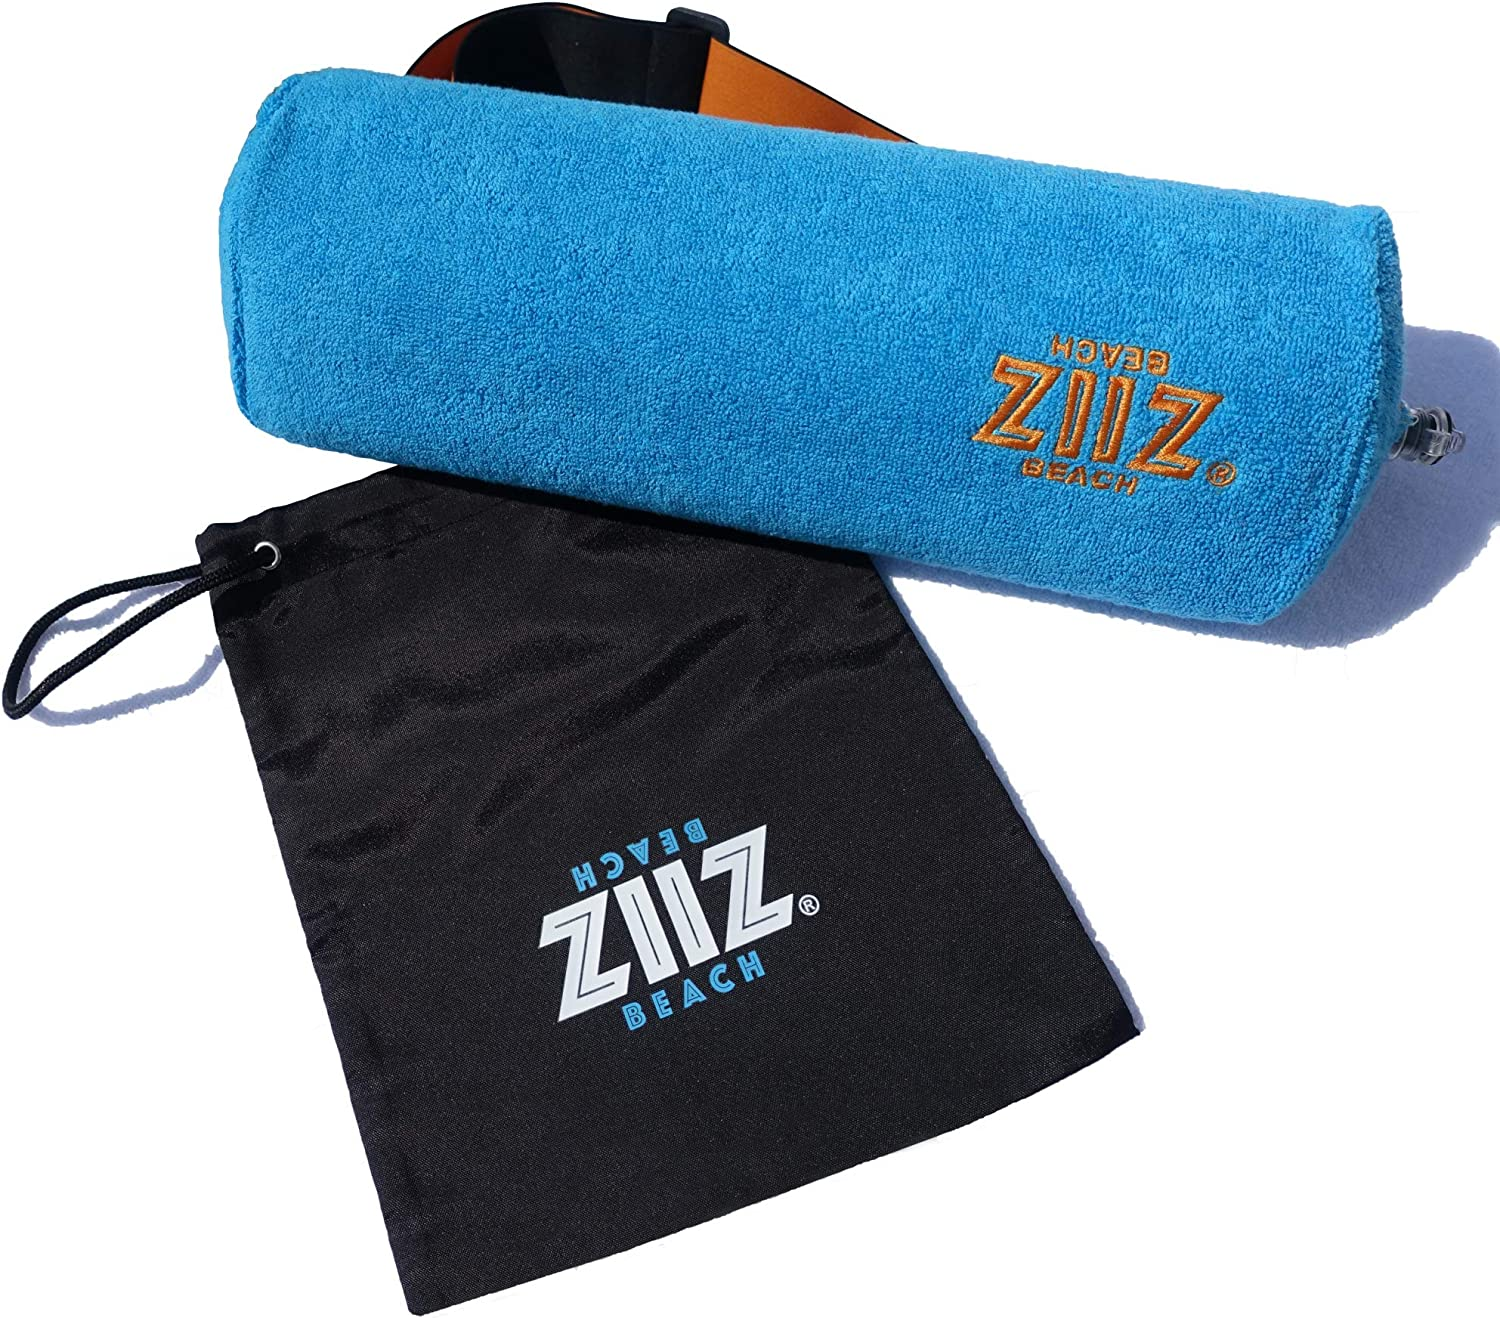 Pool car Beach Easy Blow up Compact for Lightweight Comfort in Airplane Water Resistant Pouch. Luxuriously Soft Washable 100/% Cotton Cover Garden and Home ZIIZ Inflatable Neck Beach Pillow